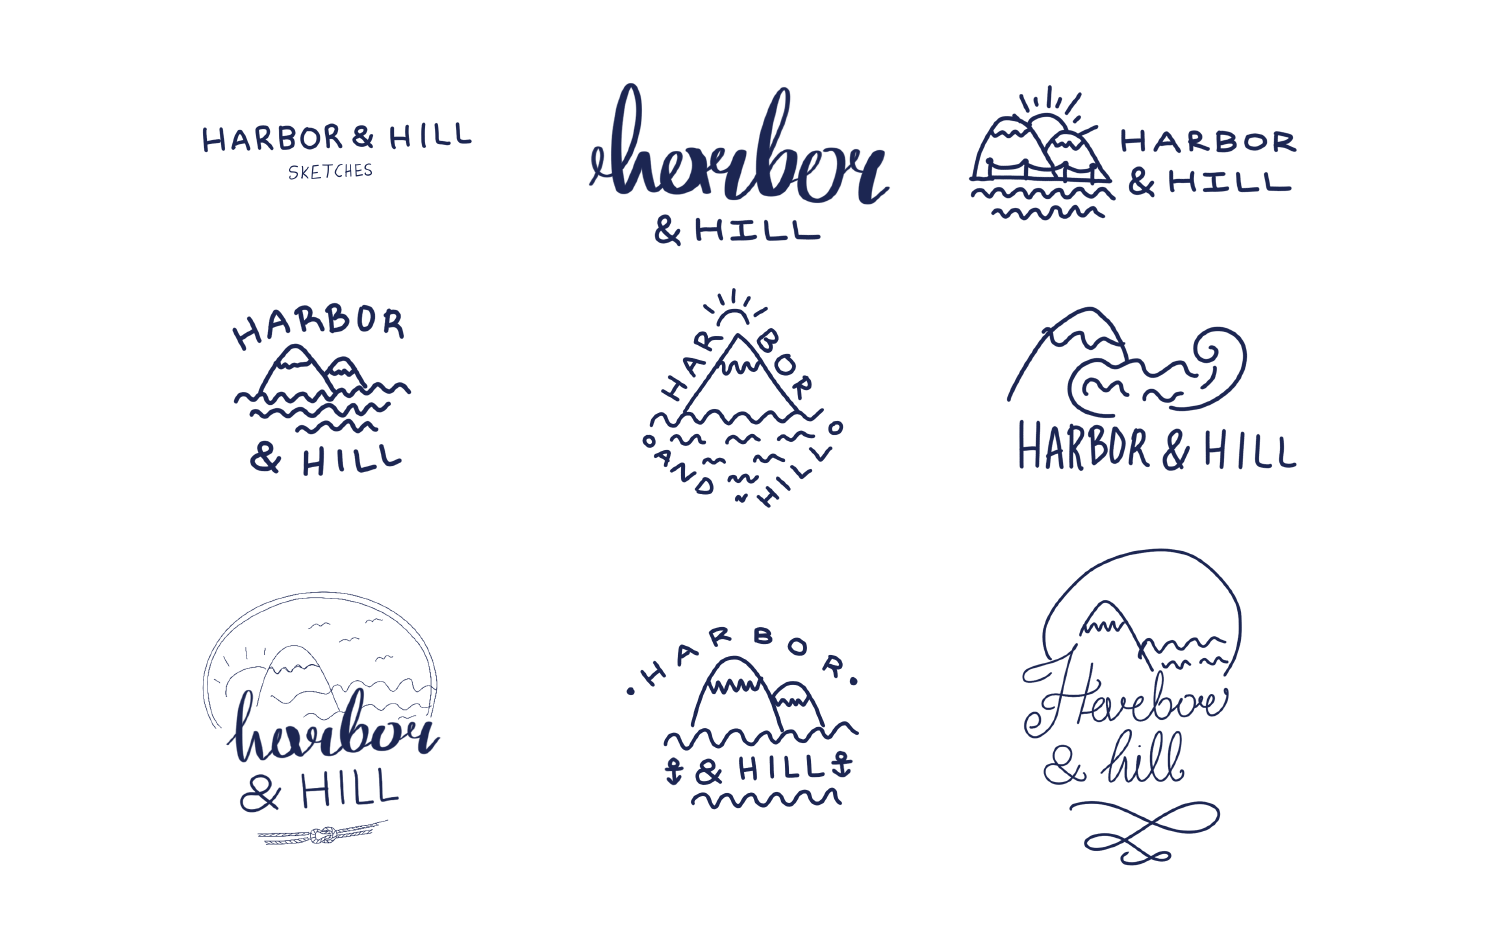 Harbor & Hill sketches